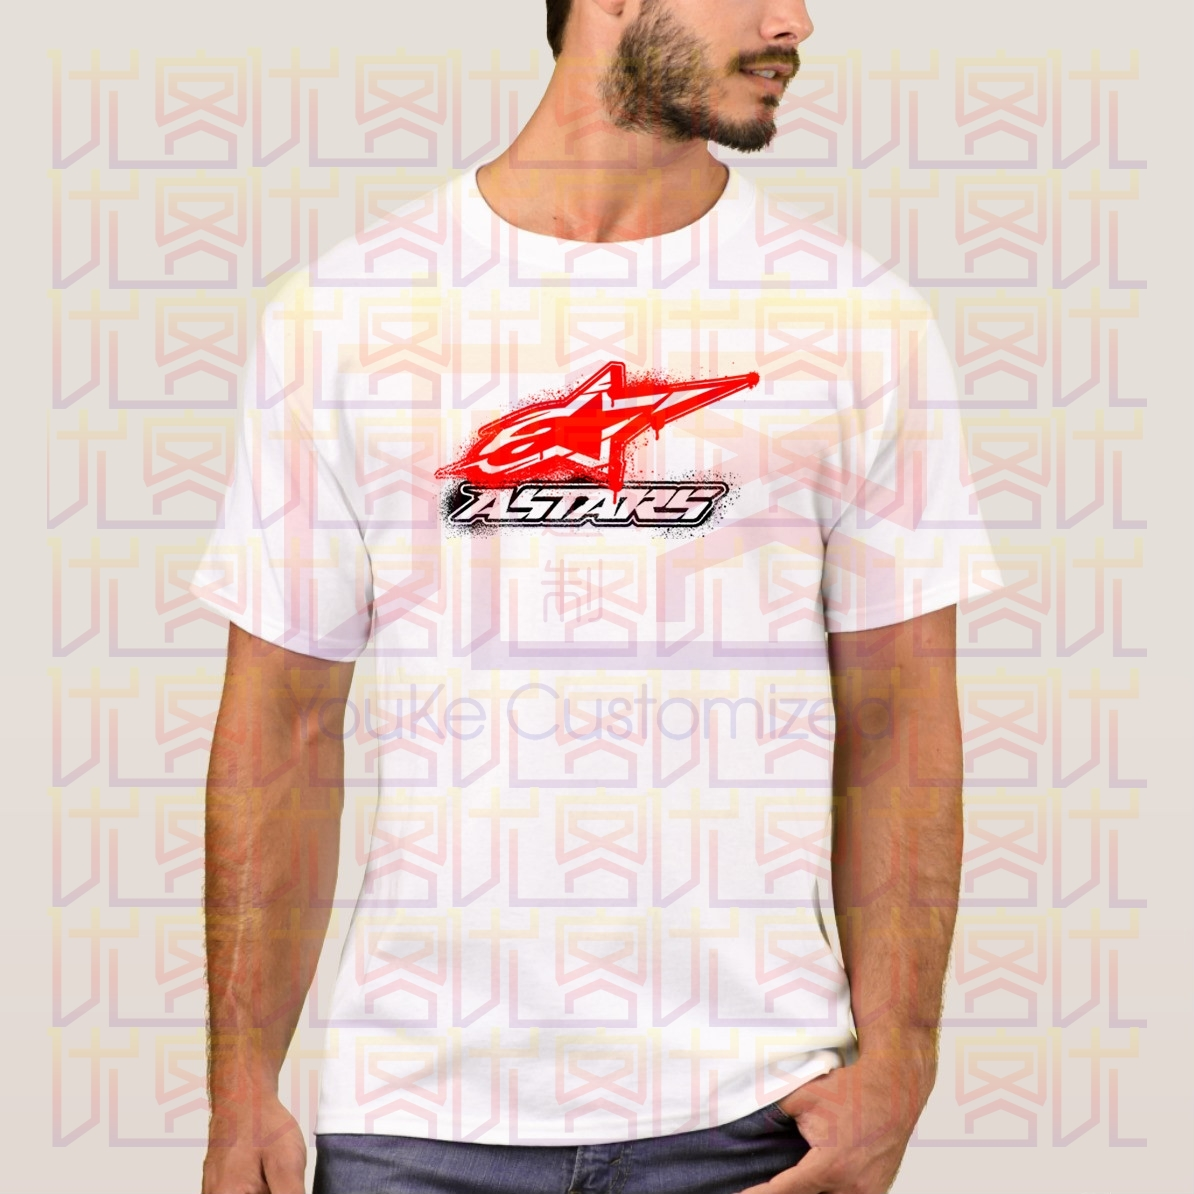 Newest 2020 Summer Men T-Shirt Fashion AlpineStar Casual Tees 100% Cotton Clothes T Shirt Homme Tops Tees S-4XL